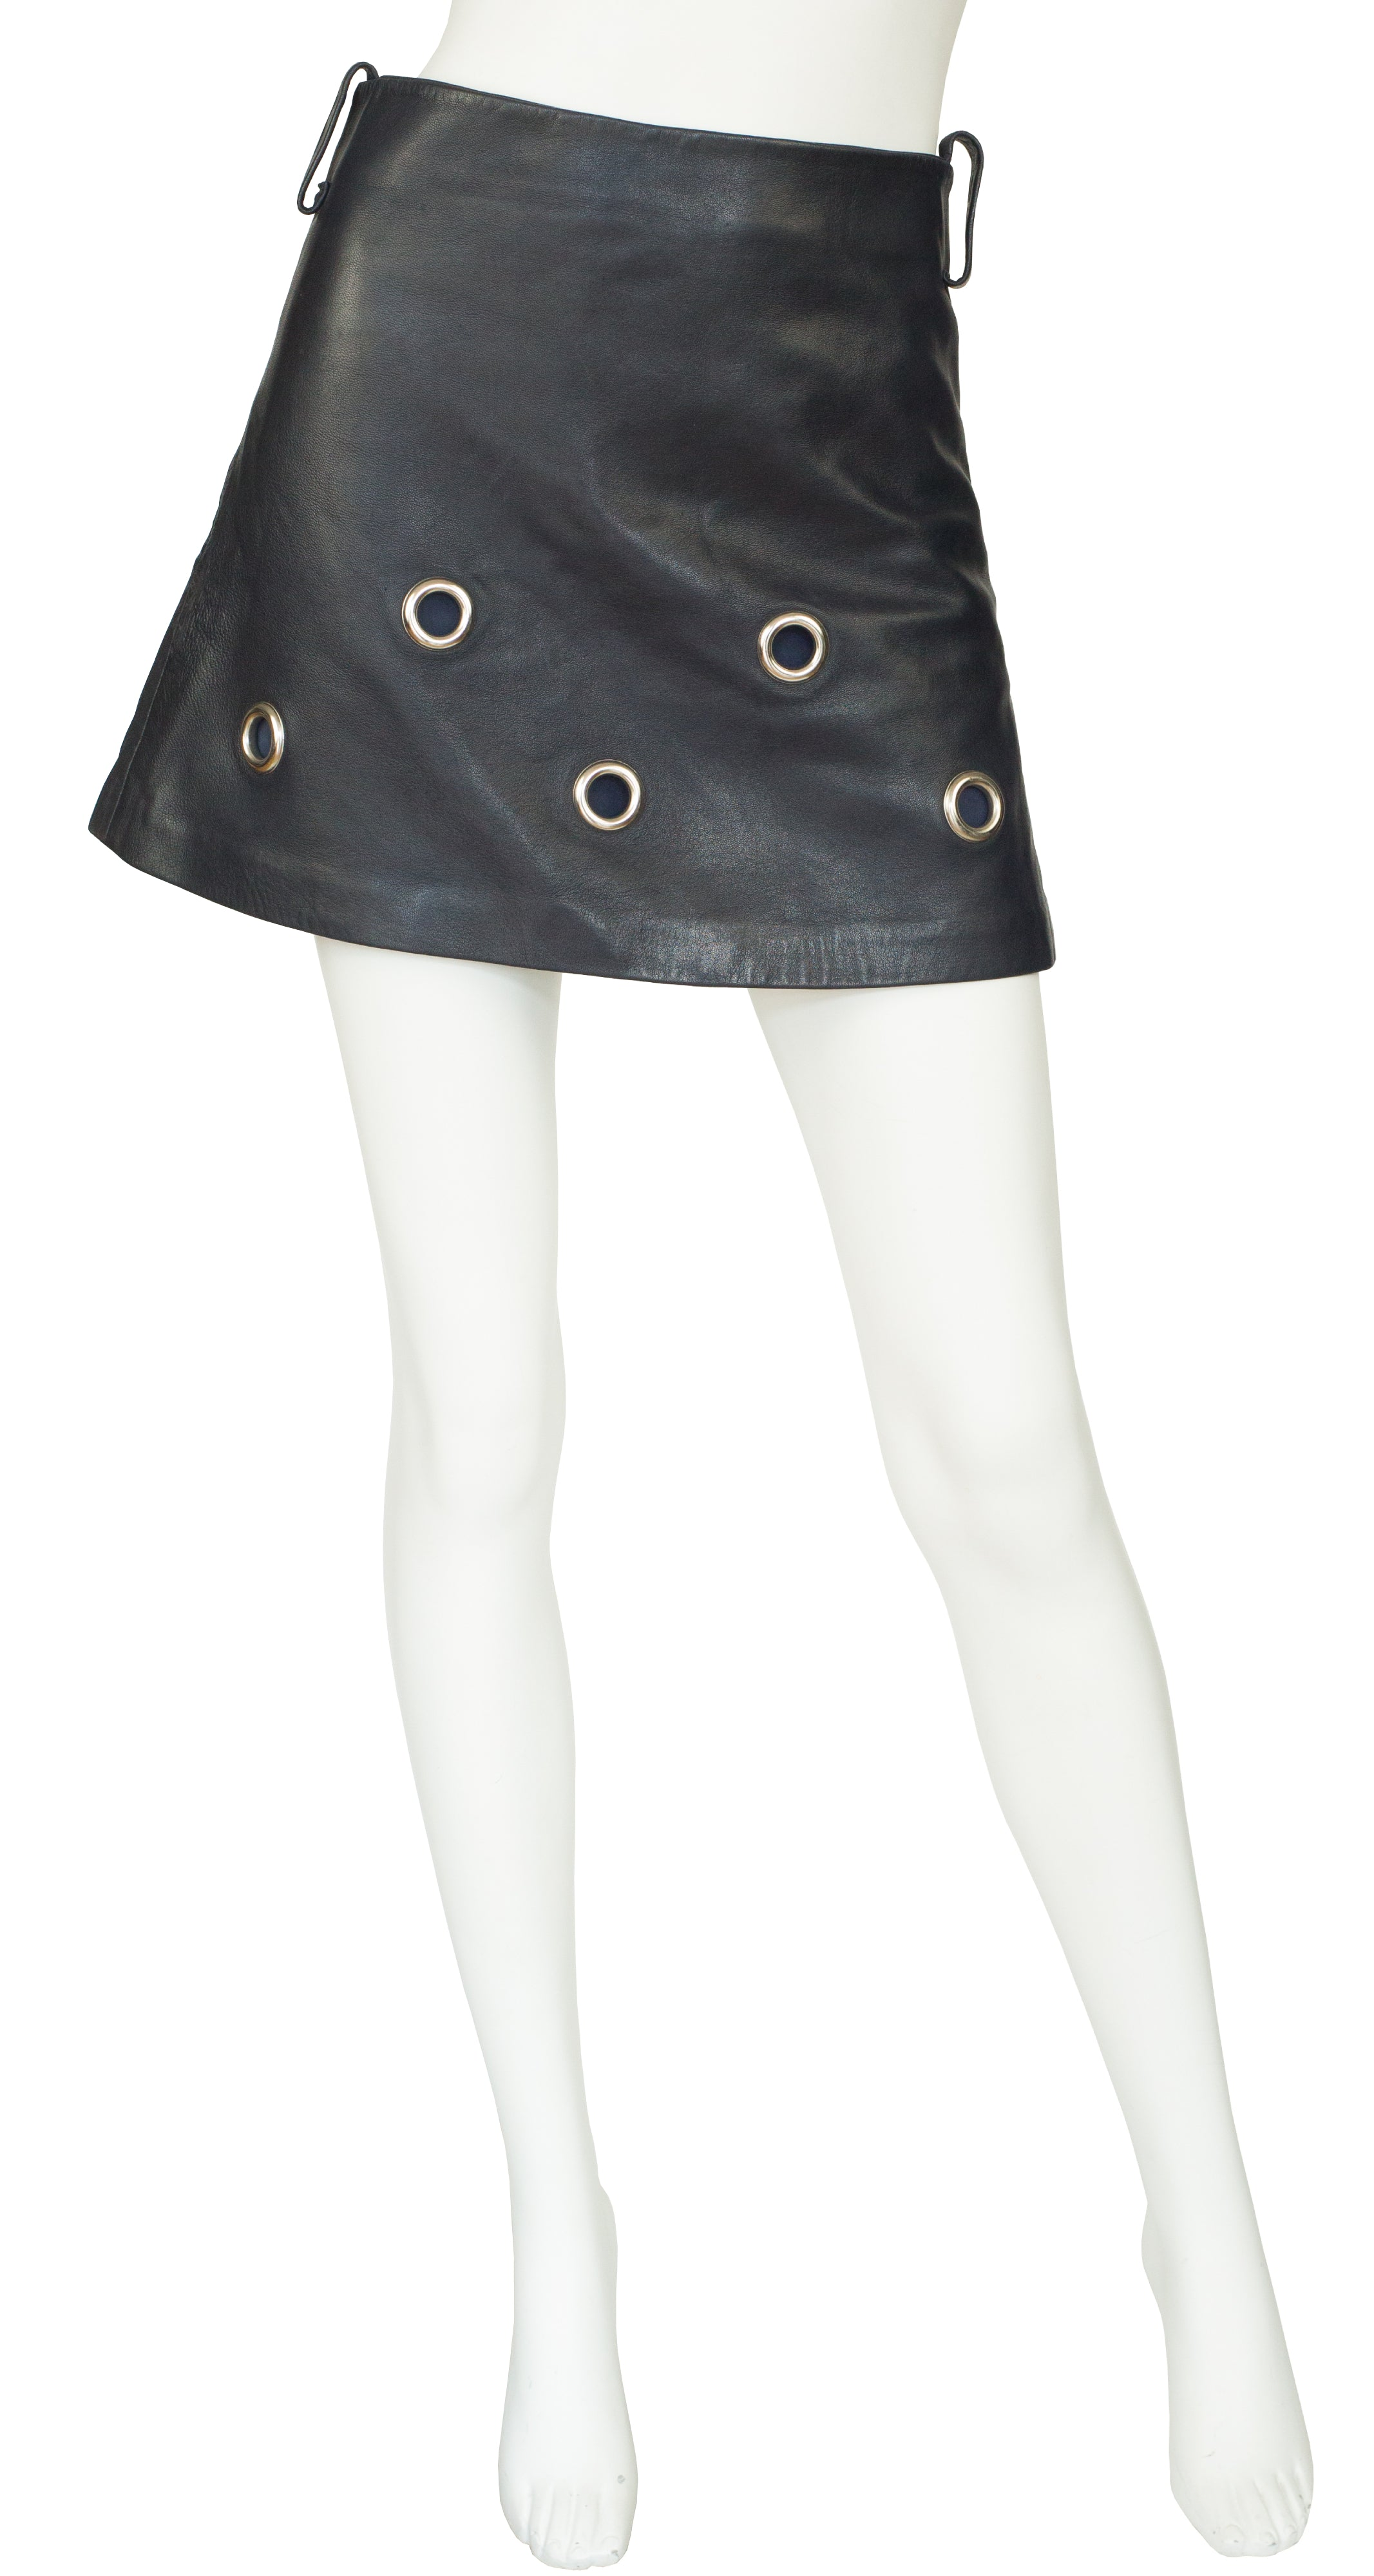 1969 Documented Black Leather Grommet Mini Skirt